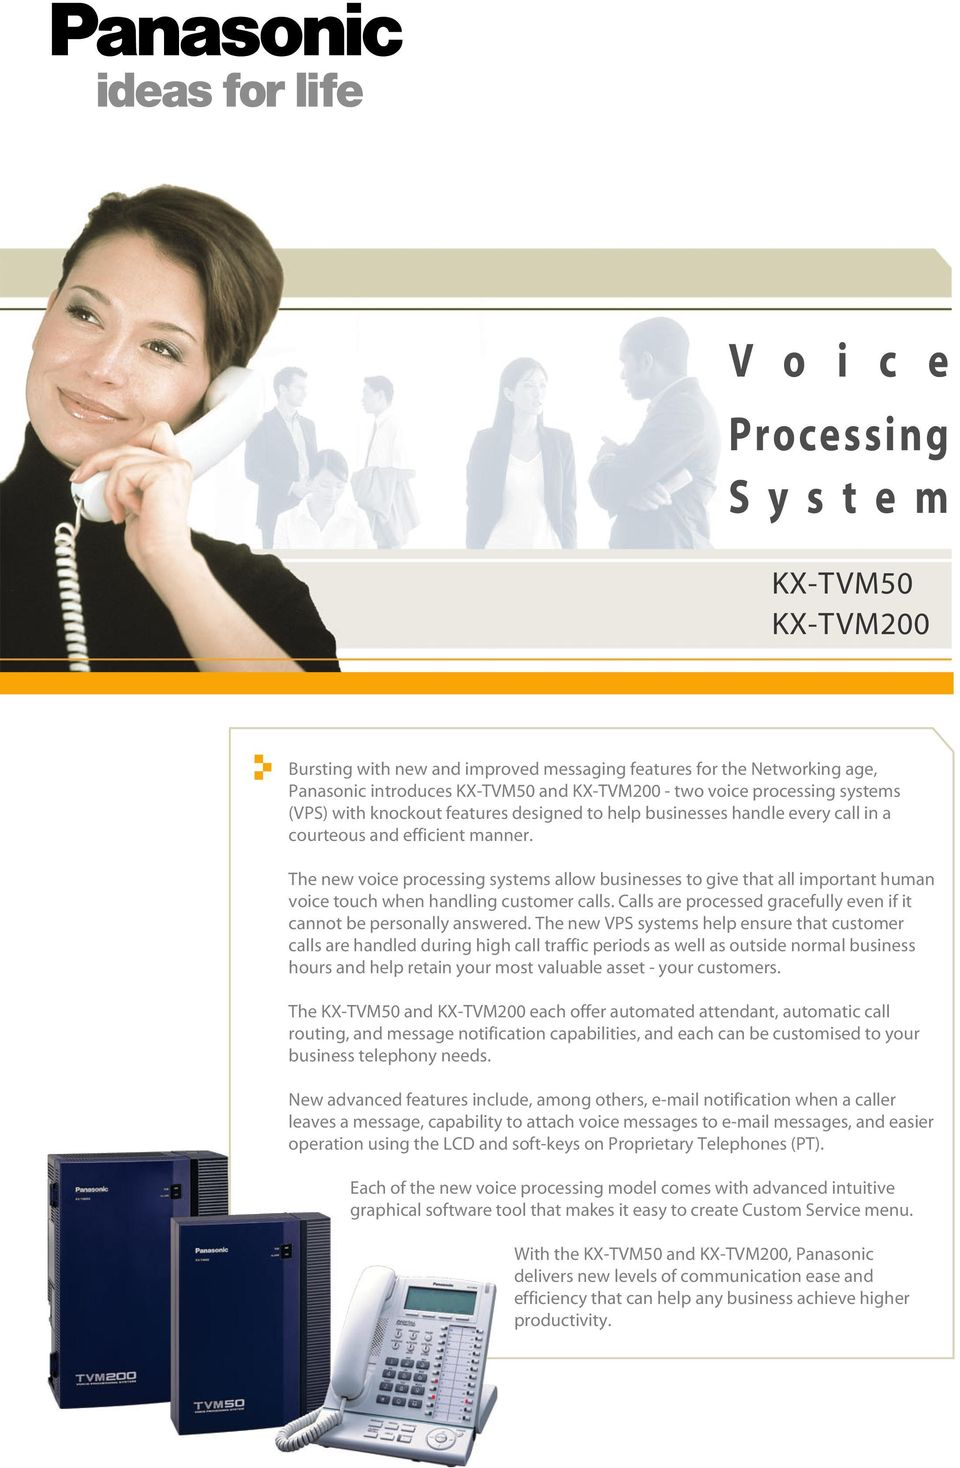 The new voice processing systems allow businesses to give that all important human voice touch when handling customer calls. Calls are processed gracefully even if it cannot be personally answered.